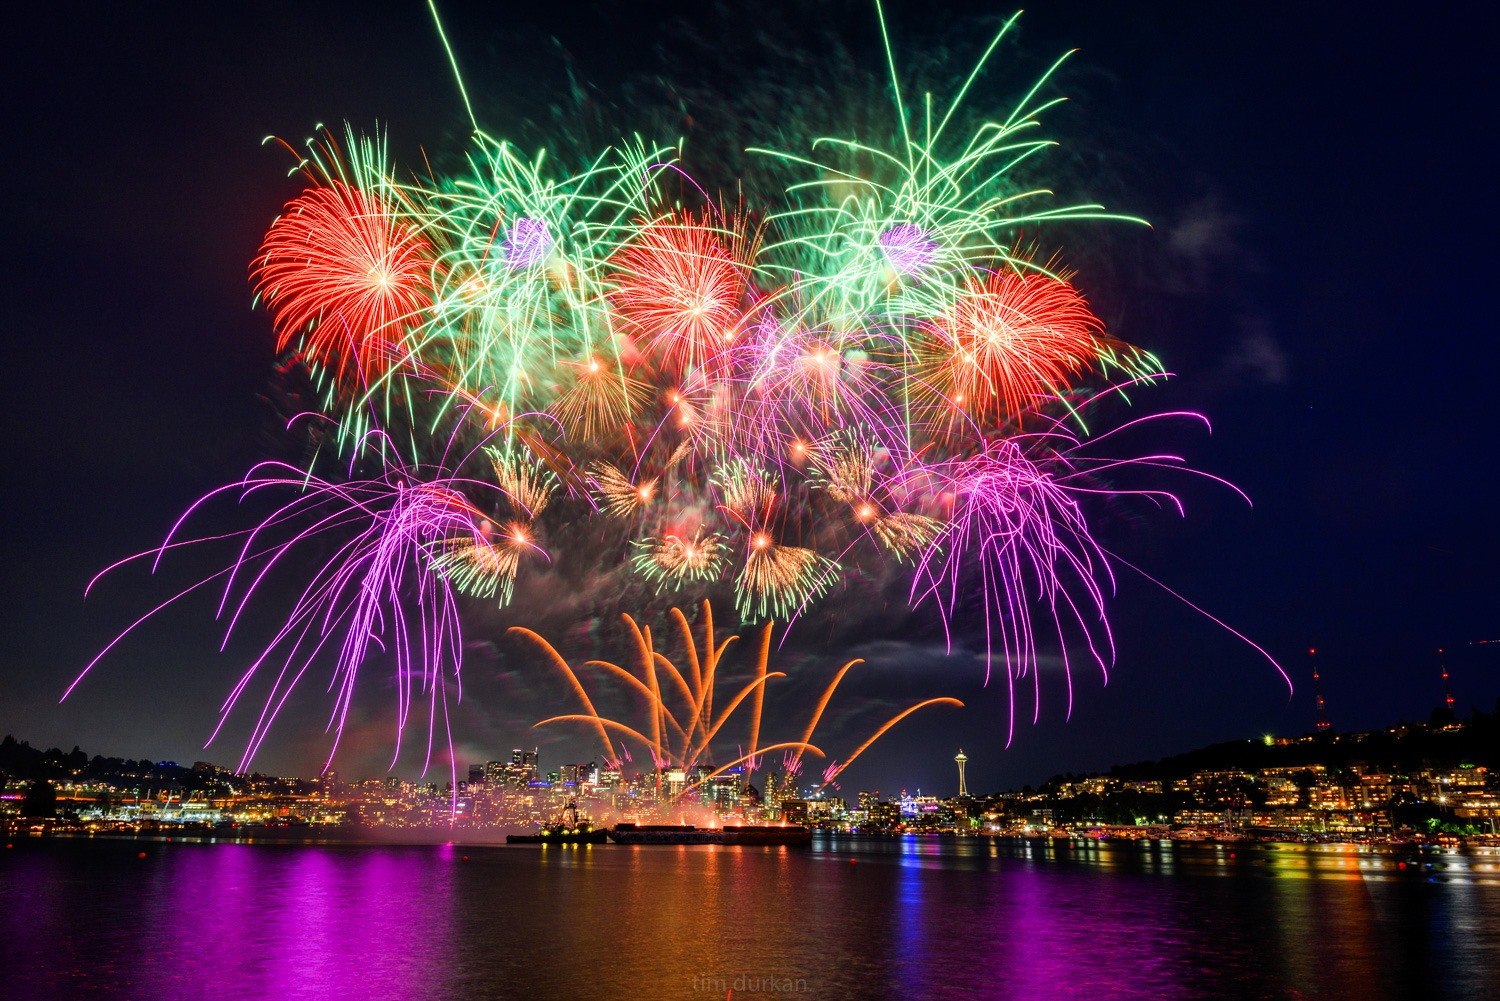 Fourth of July fireworks in Seattle (Tim Durkan Photography - Seattle)